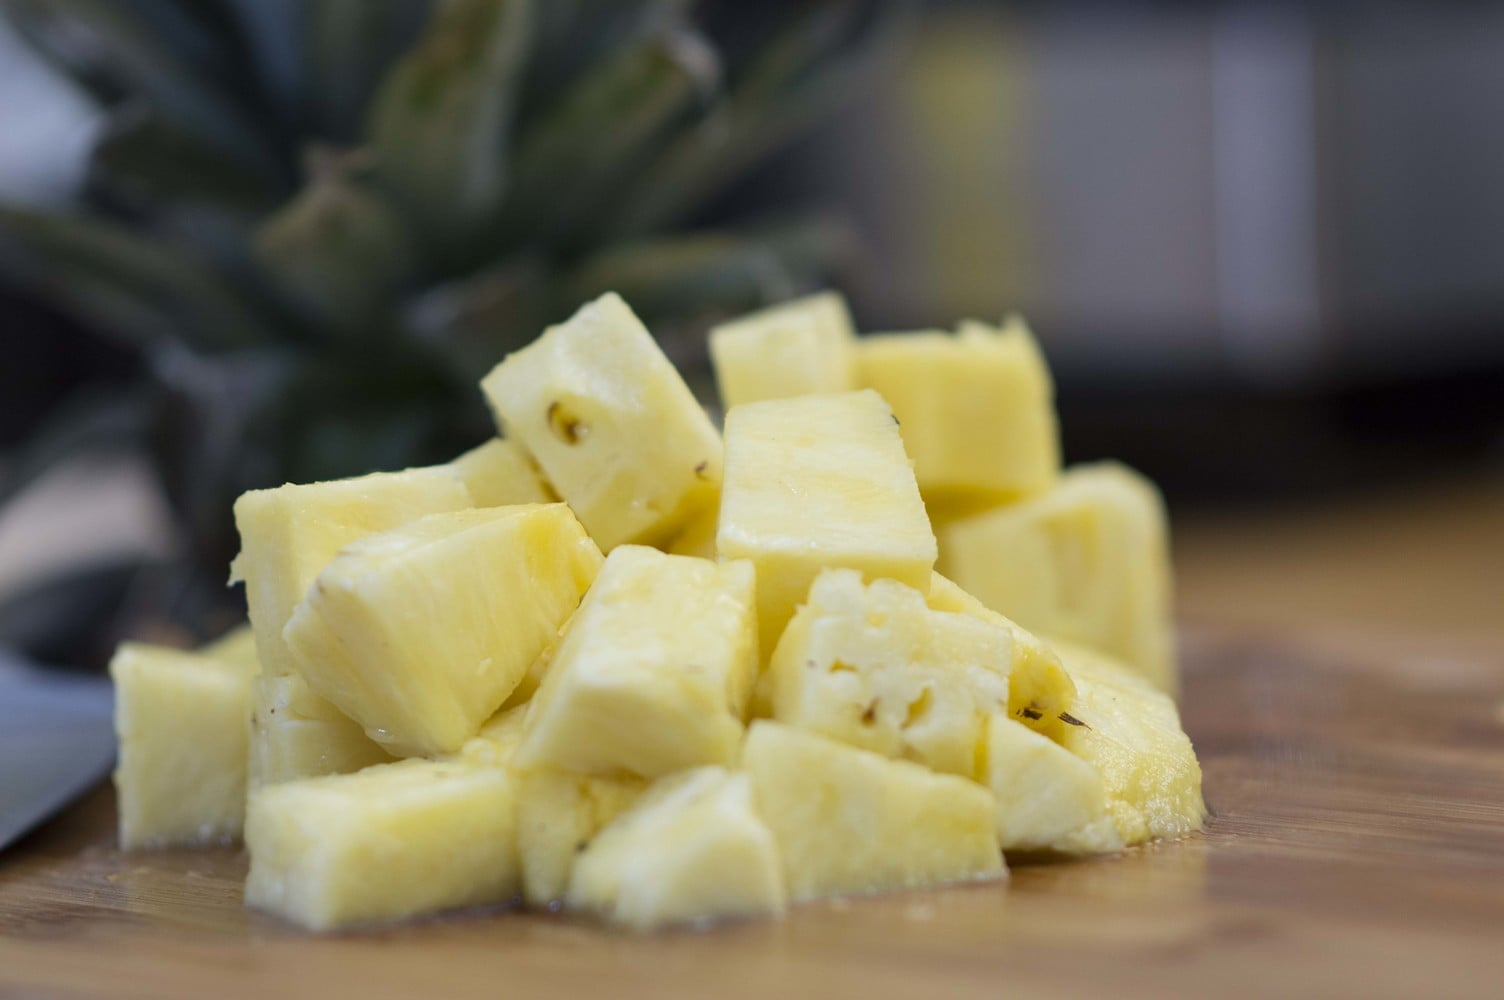 Chunks of pineapple to show you how to cut a pineapple